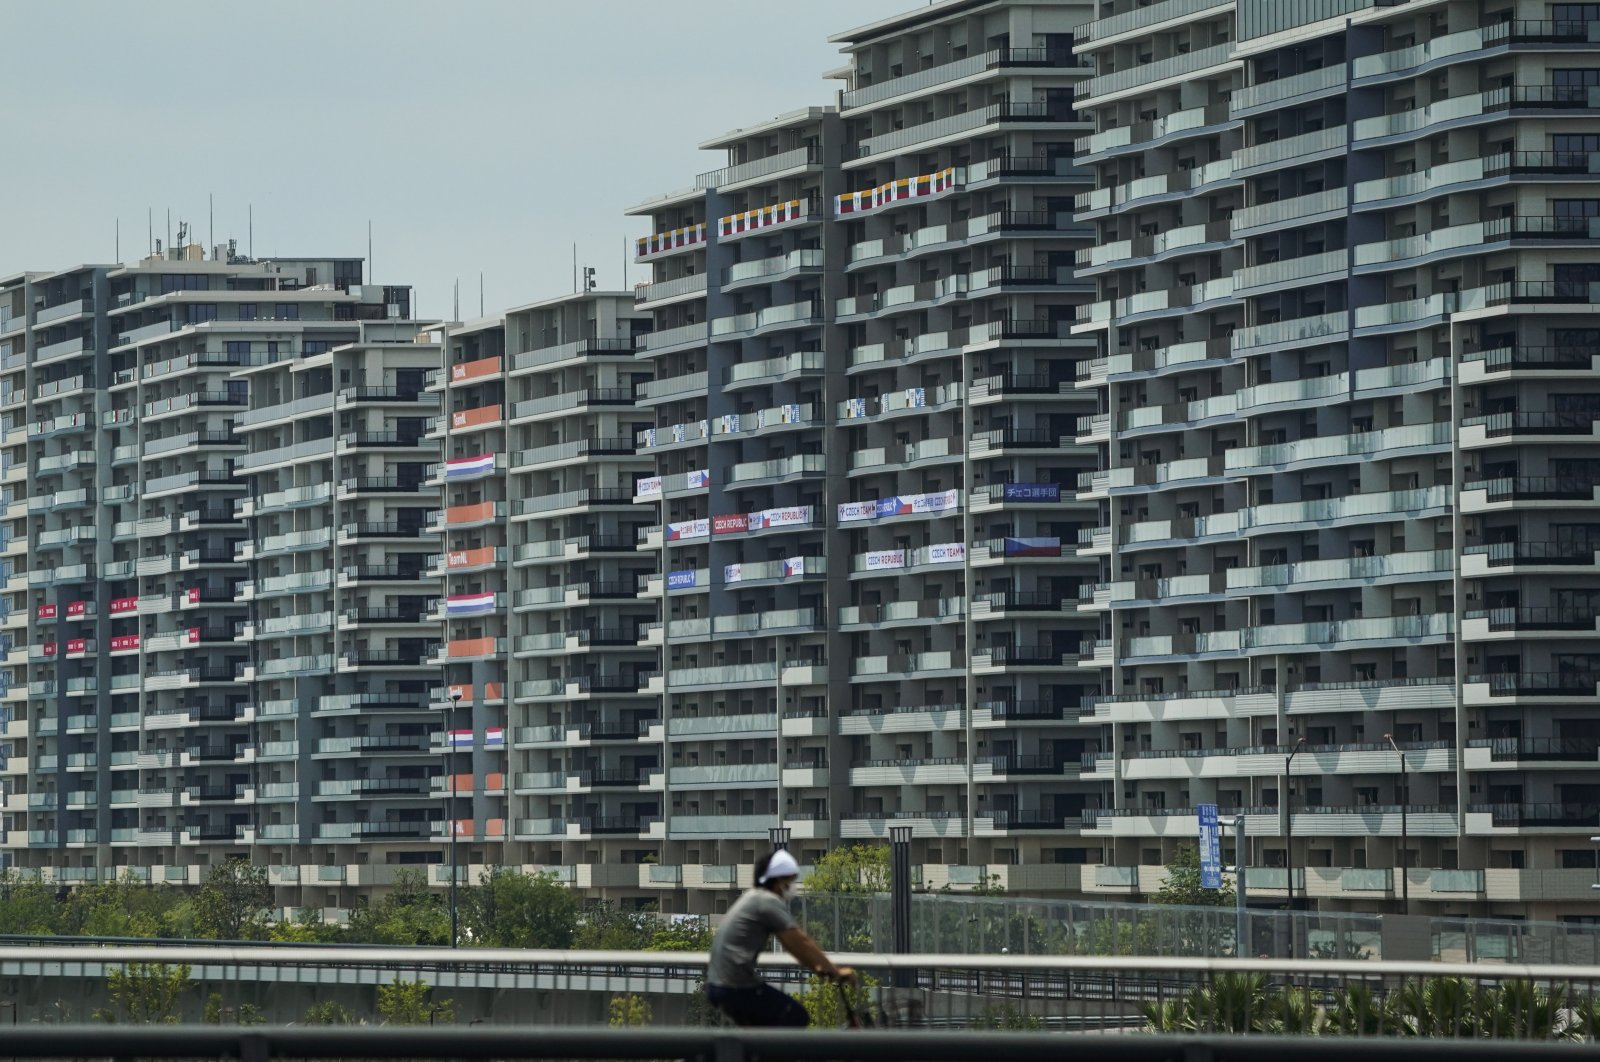 A man rides his bike near the athlete's village for the 2020 Summer Olympics and Paralympics, in Tokyo, Japan, July 15, 2021. (AP Photo)